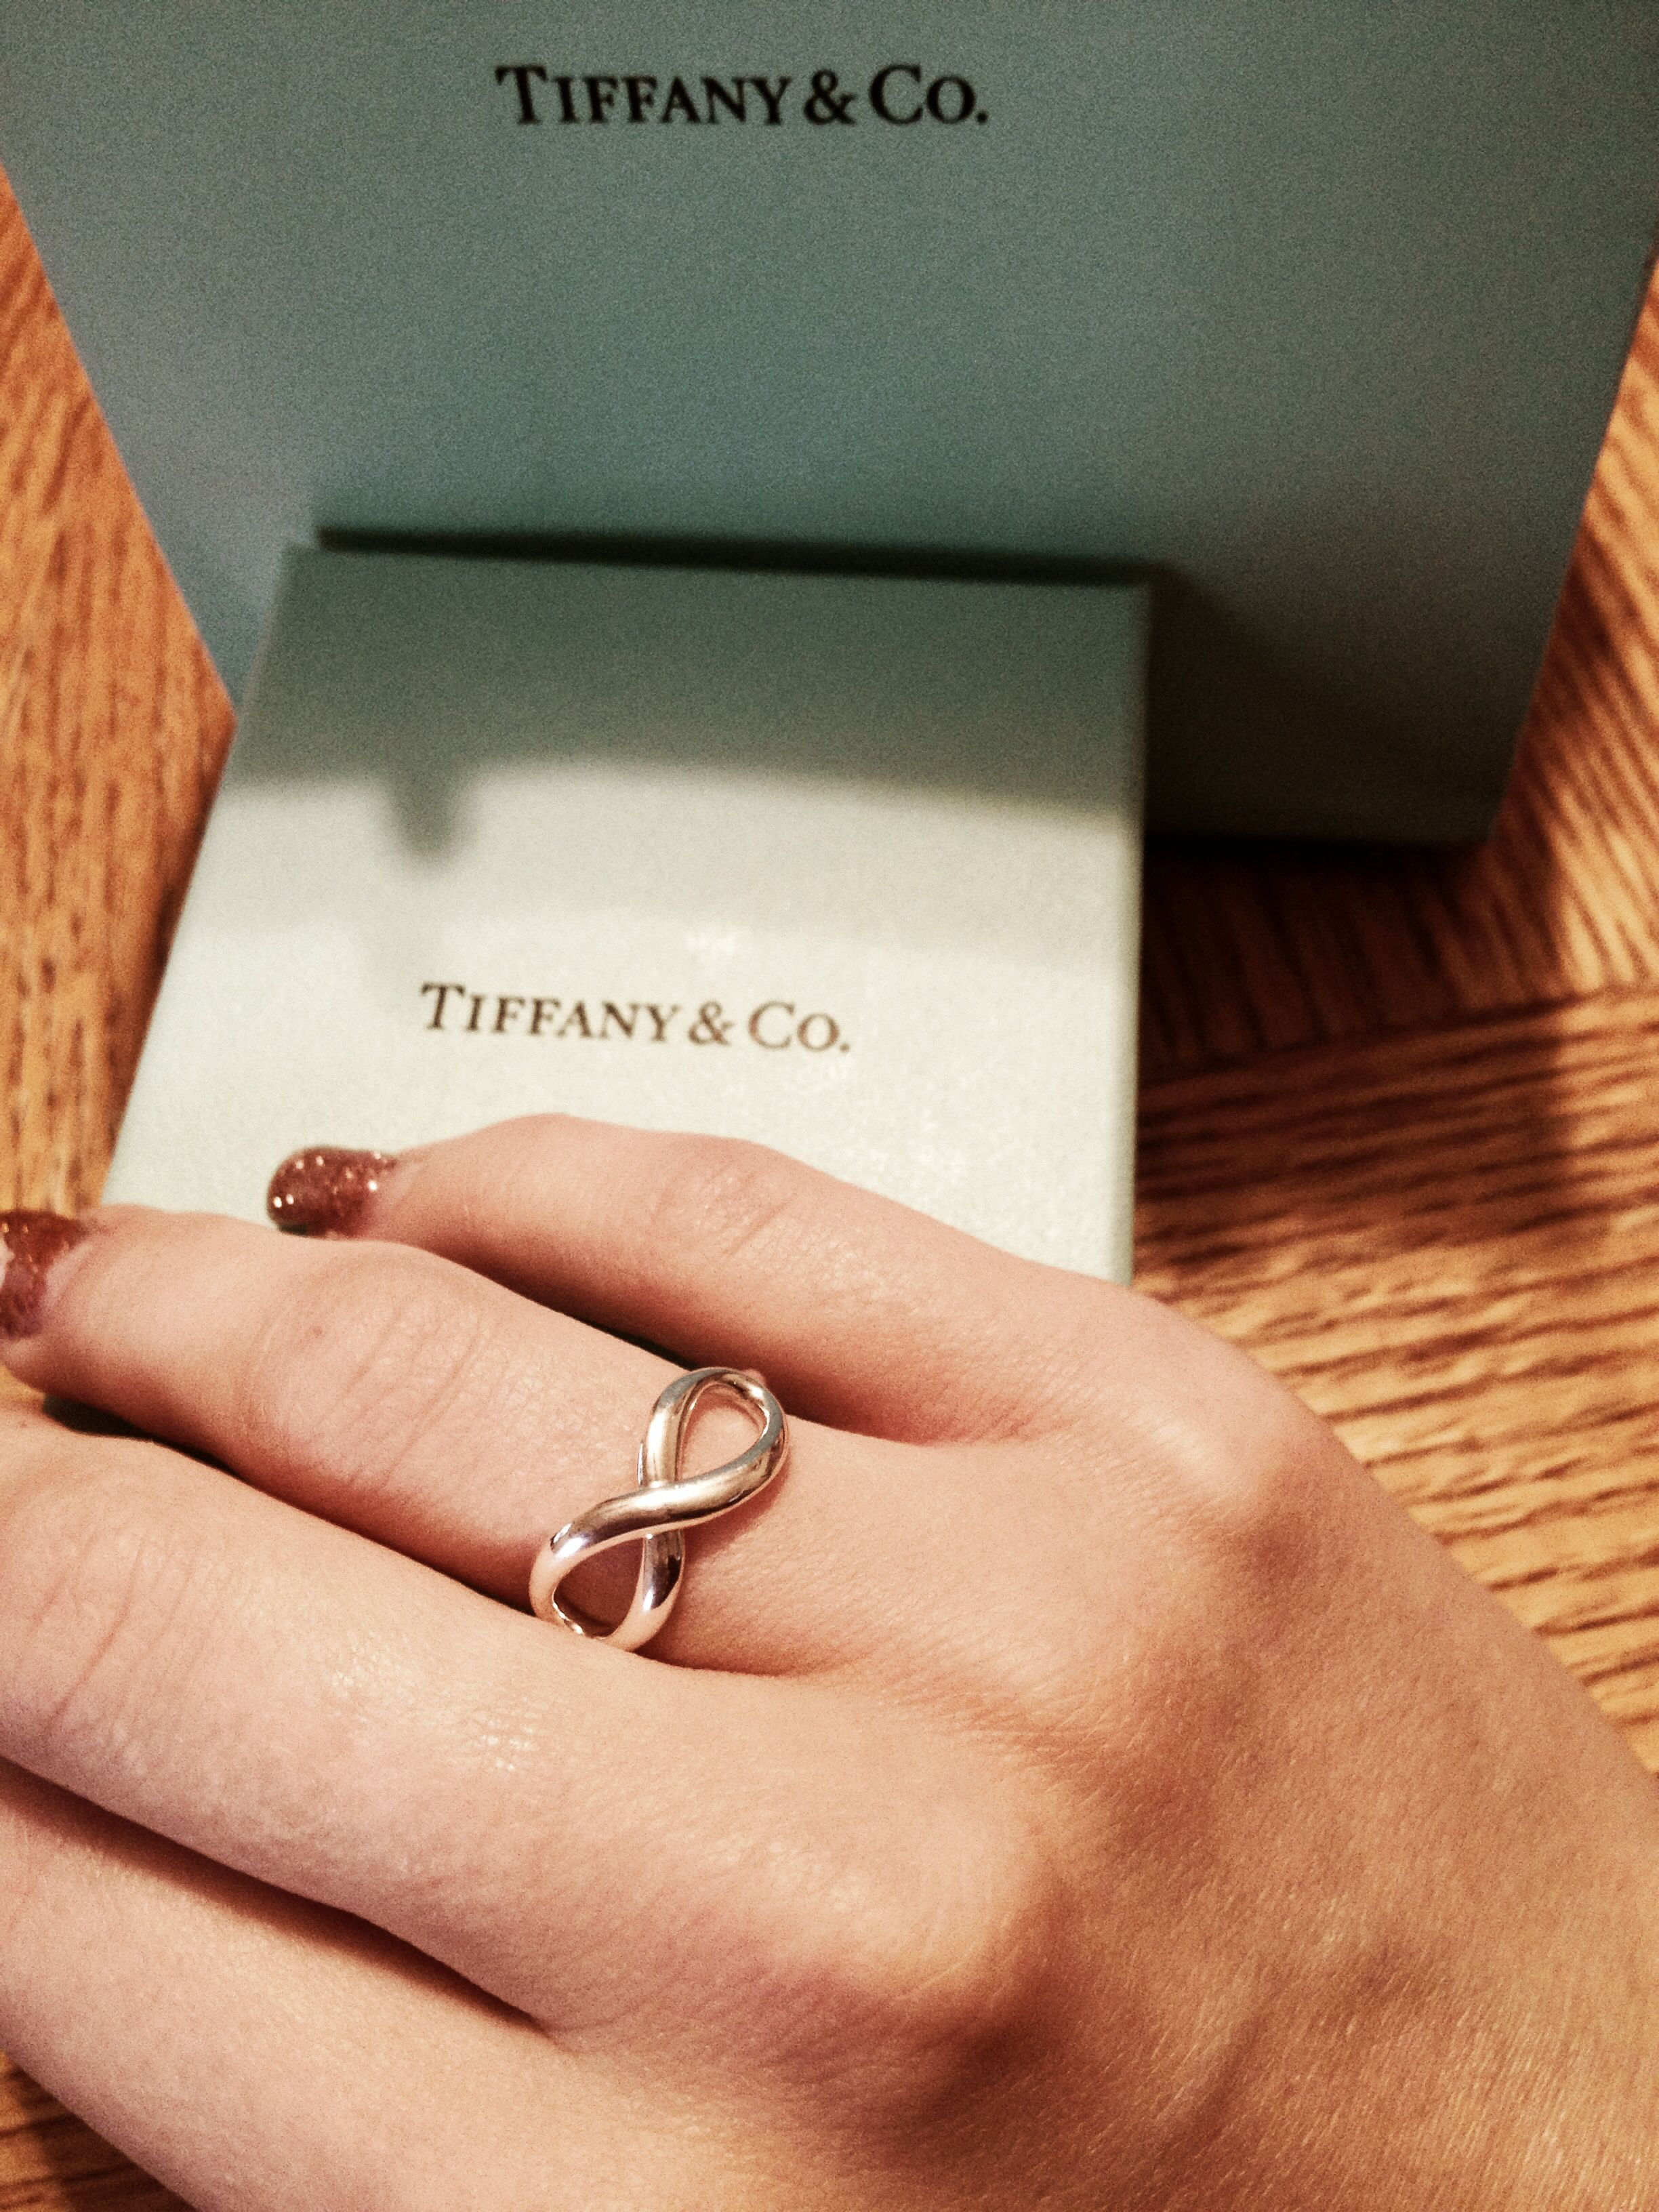 The promise ring my boyfriend gave to me last night in the